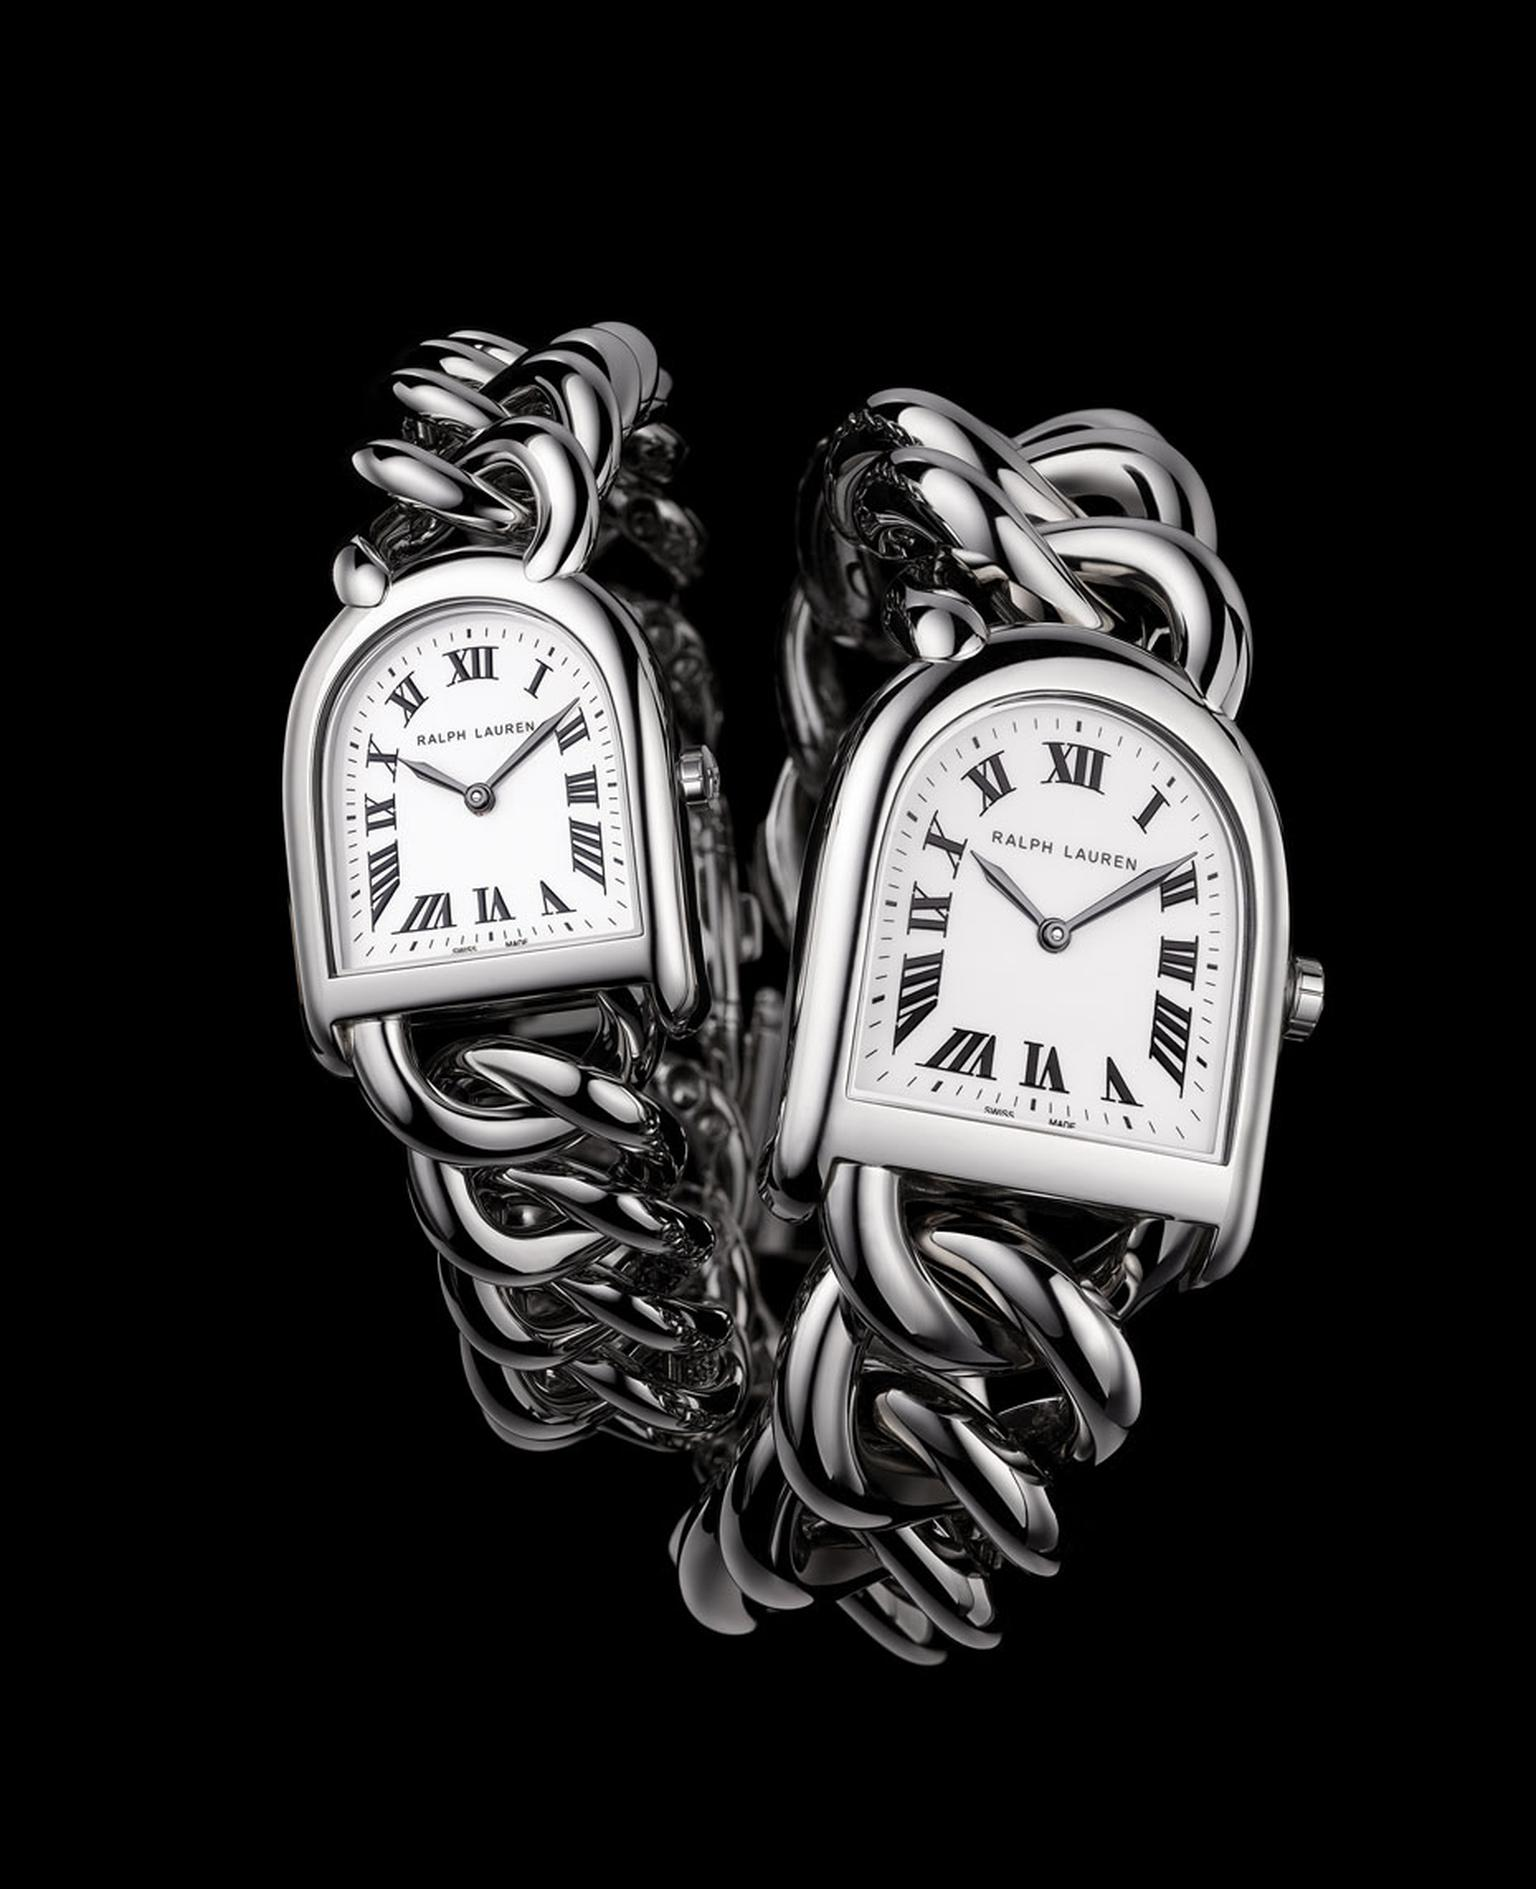 Launched this December, the new Ralph Lauren Stirrup Petit Link in stainless steel, with an off-white face, is pictured here alongside a larger model.